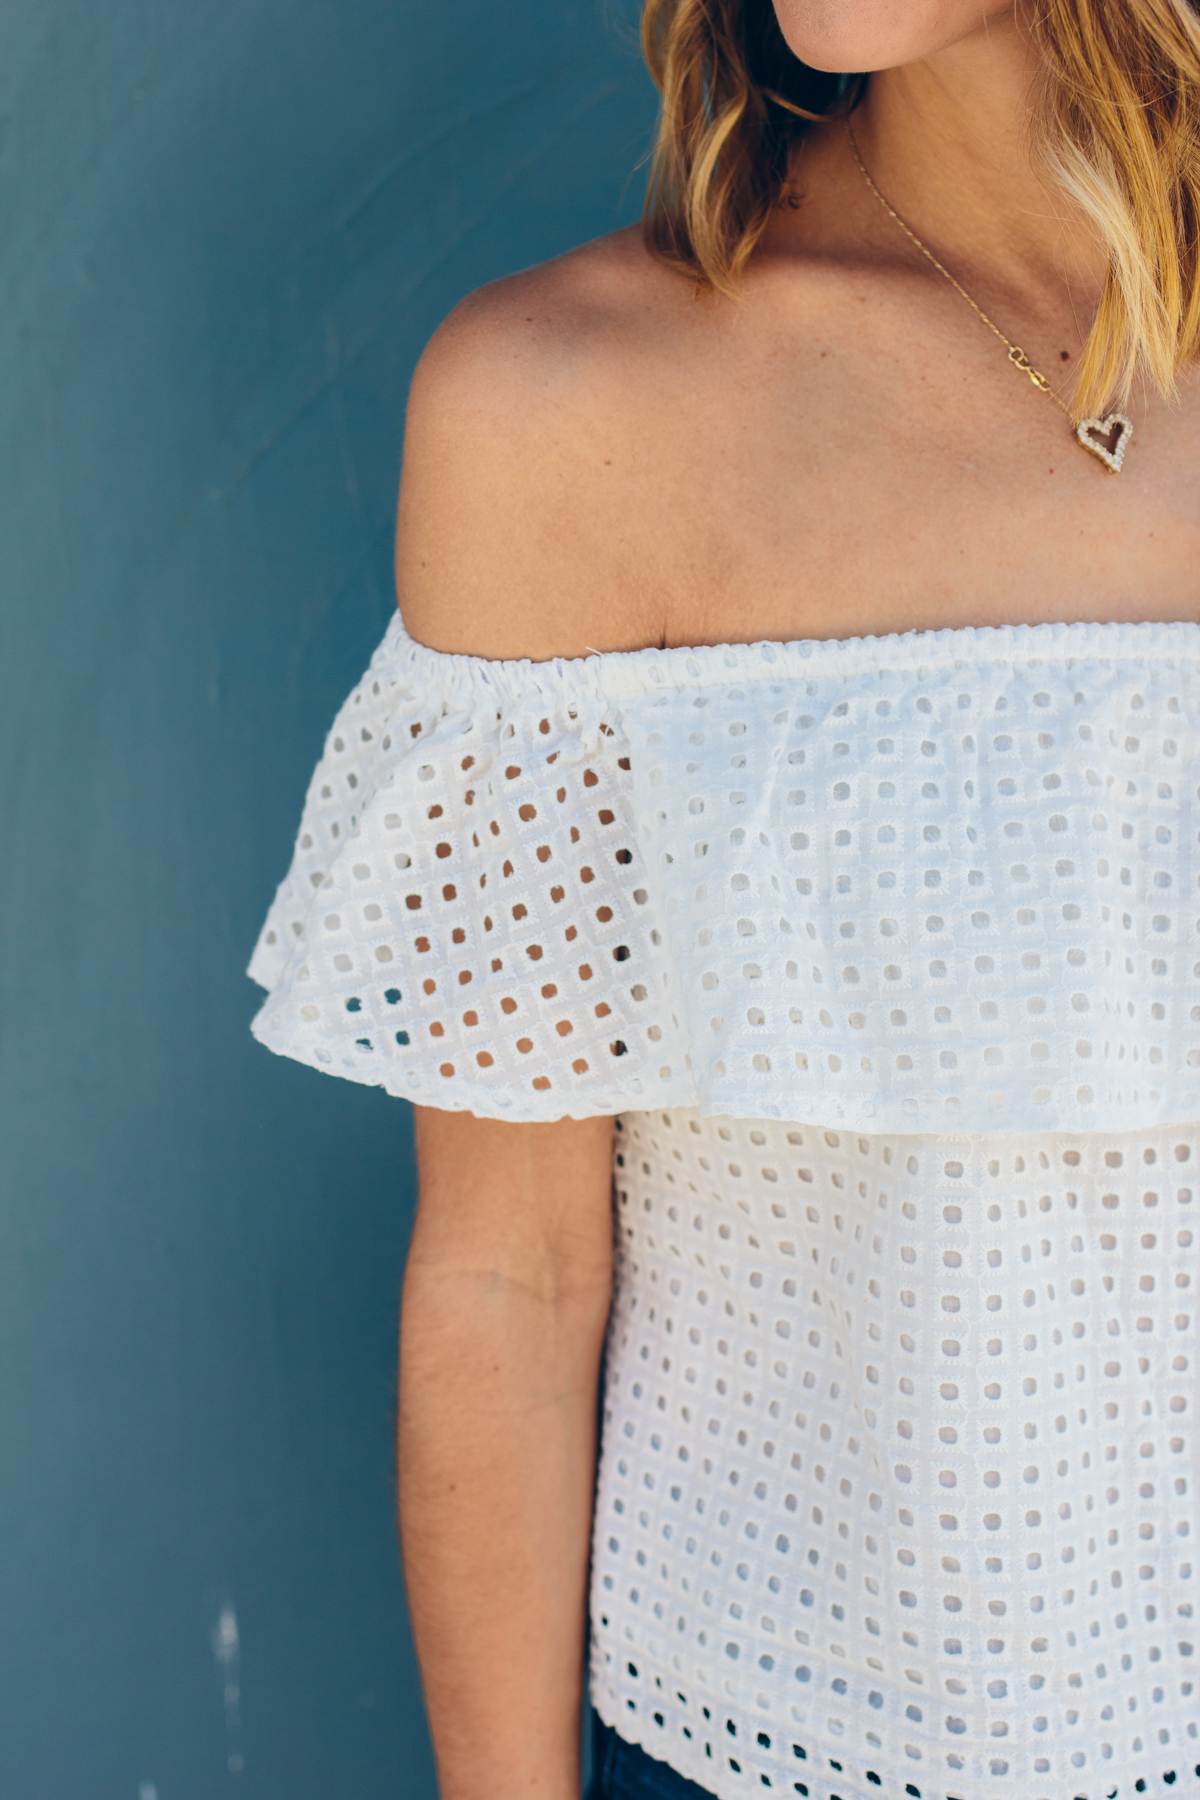 off the shoulder top, perforated top — via @TheFoxandShe